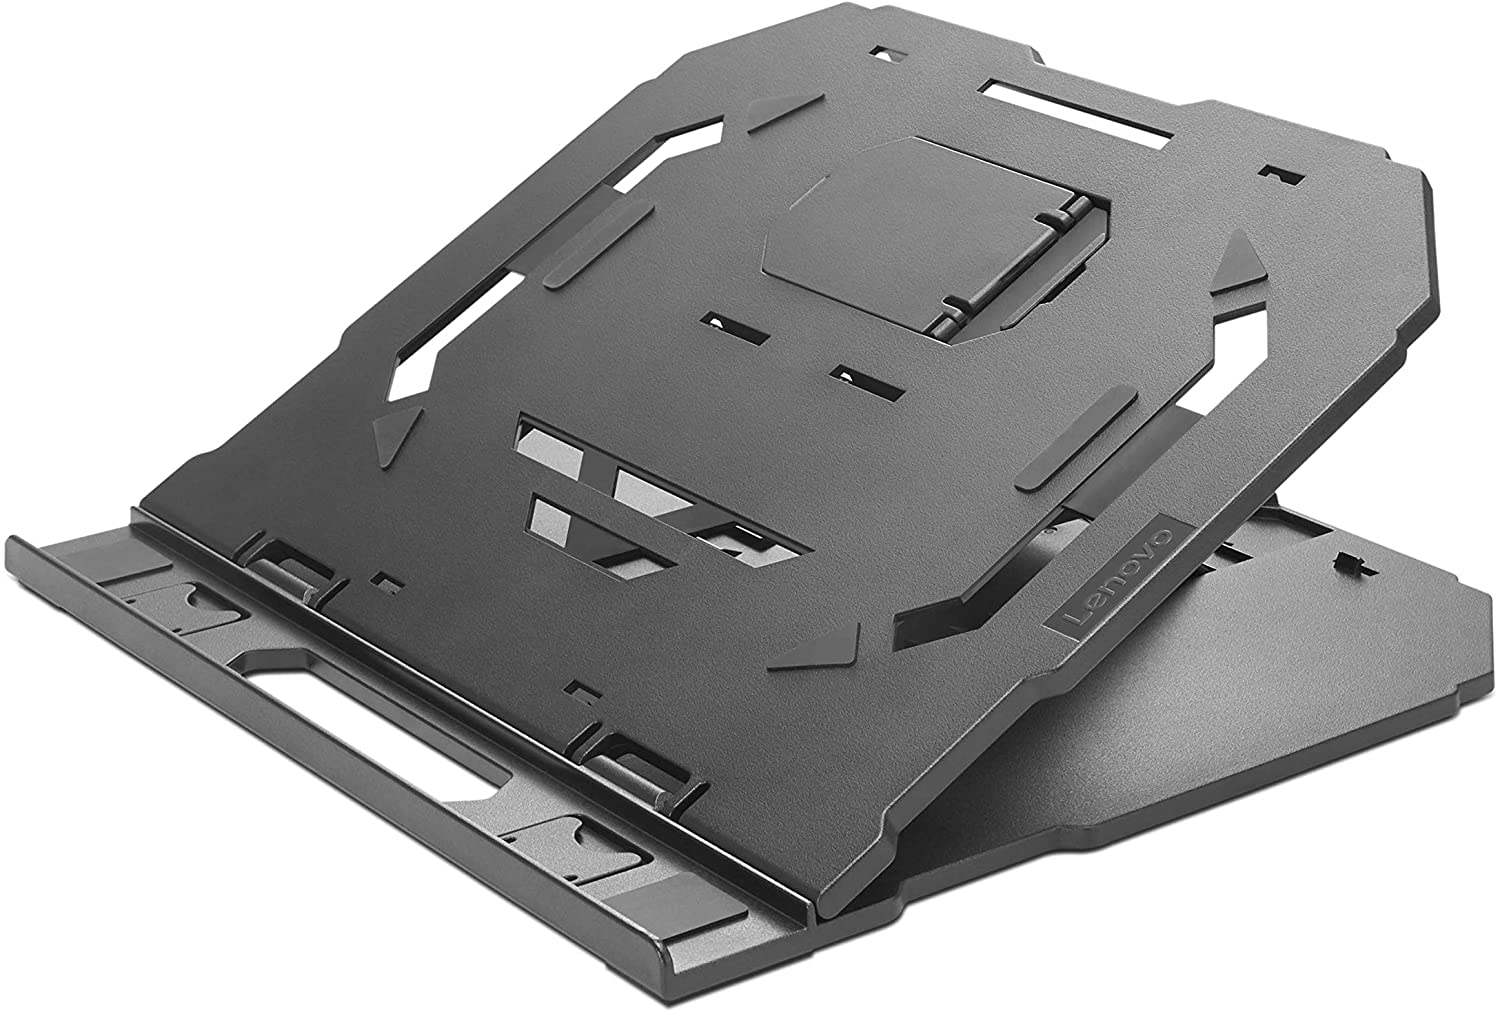 Lenovo 2-in1 Laptop Stand